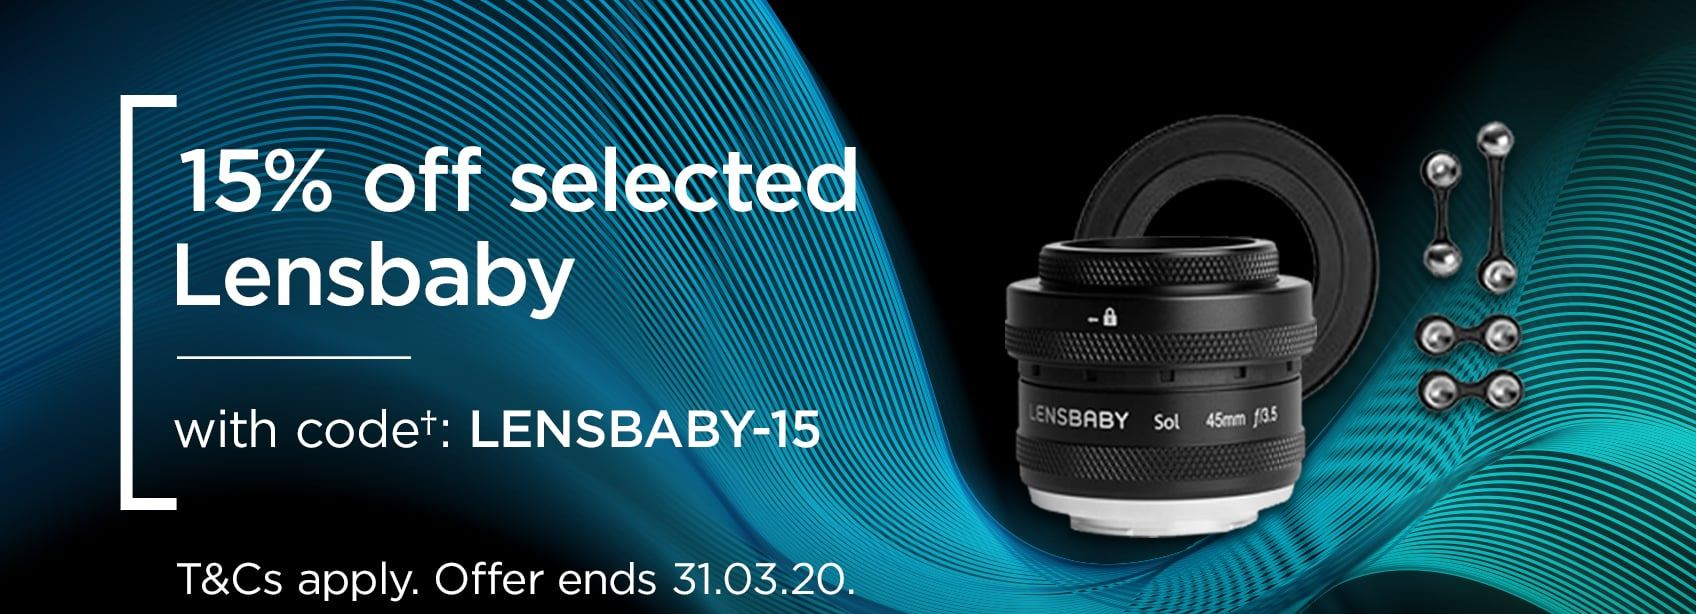 15% off selected Lensbaby - with code LENSBABY-15 T&Cs apply. Offer ends 31.03.20